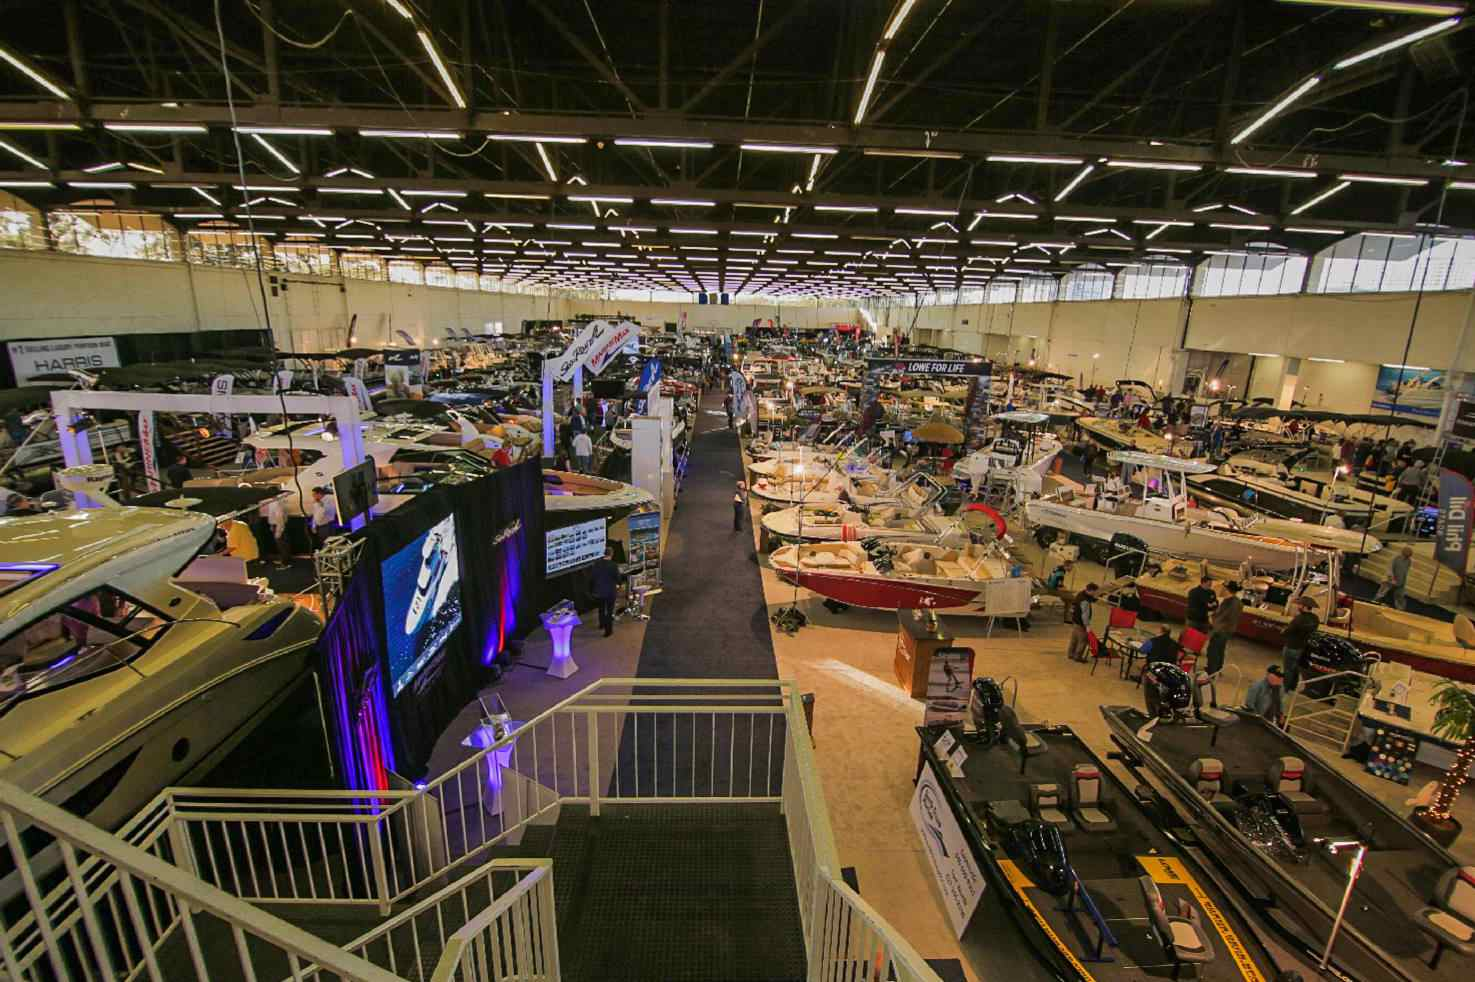 Large hall used to display boats during the DFW boat show